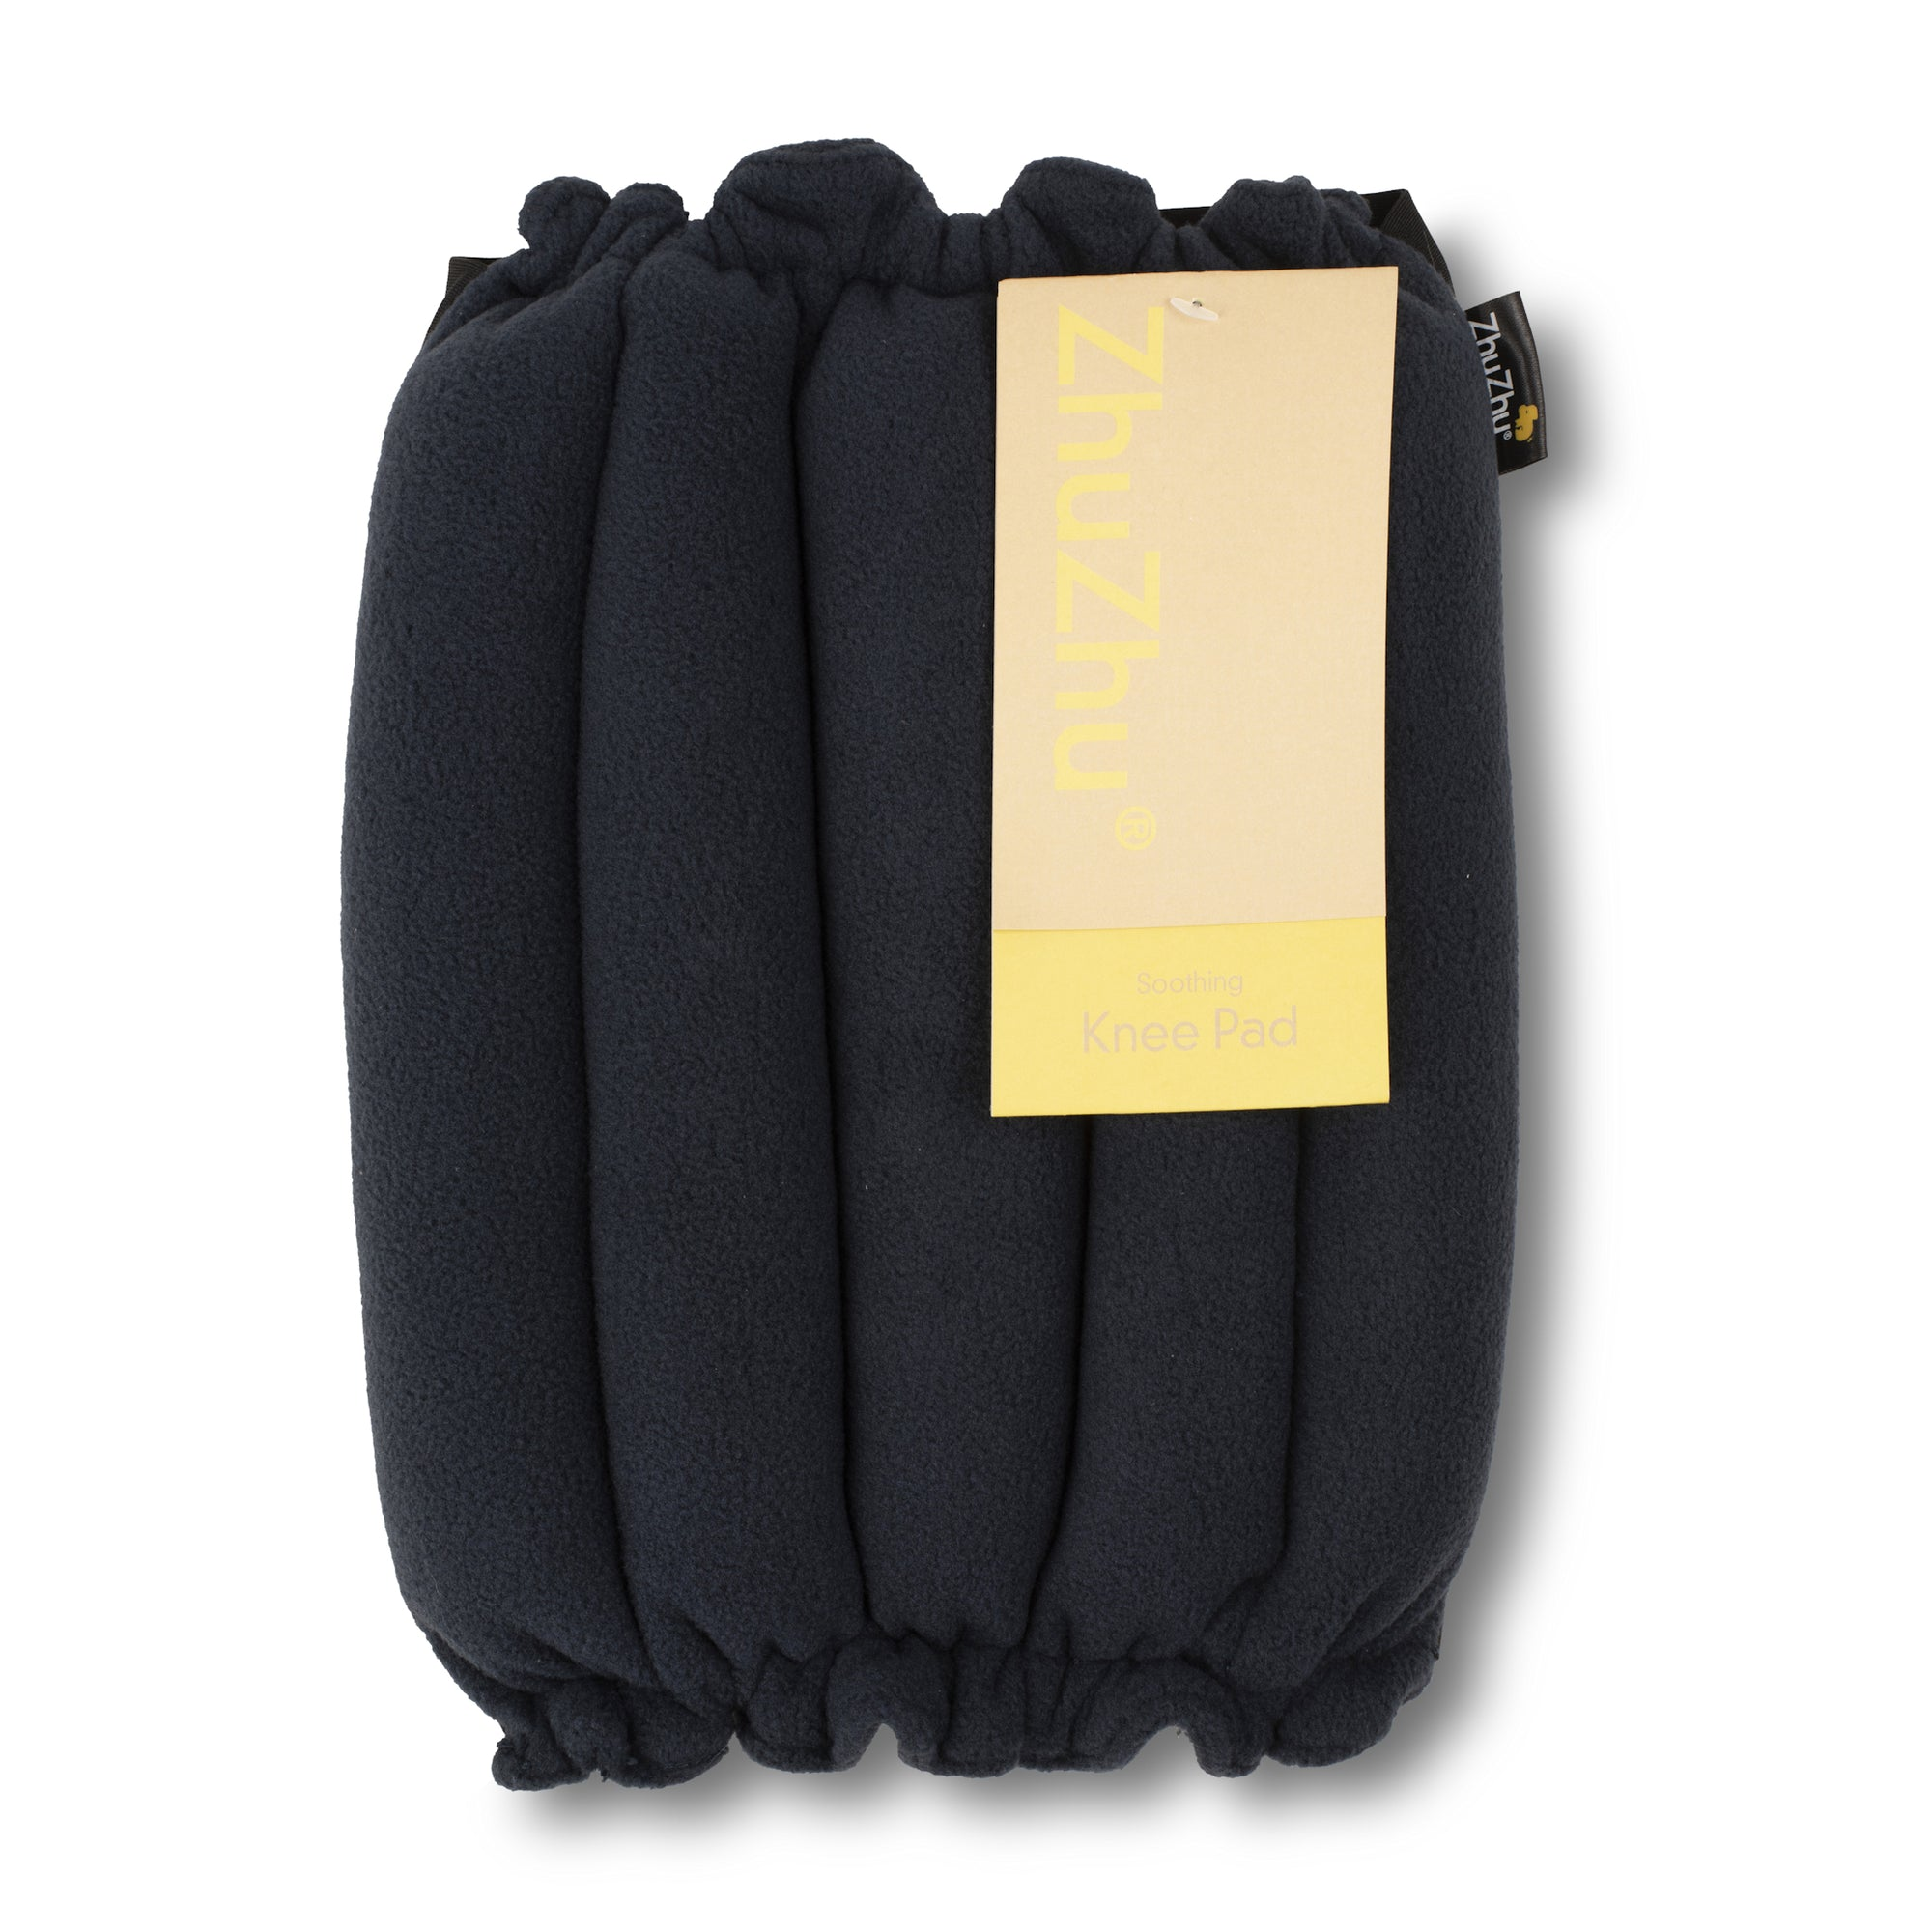 Zhu-Zhu Knee Pad - Microwavable Wheat Bag - Navy